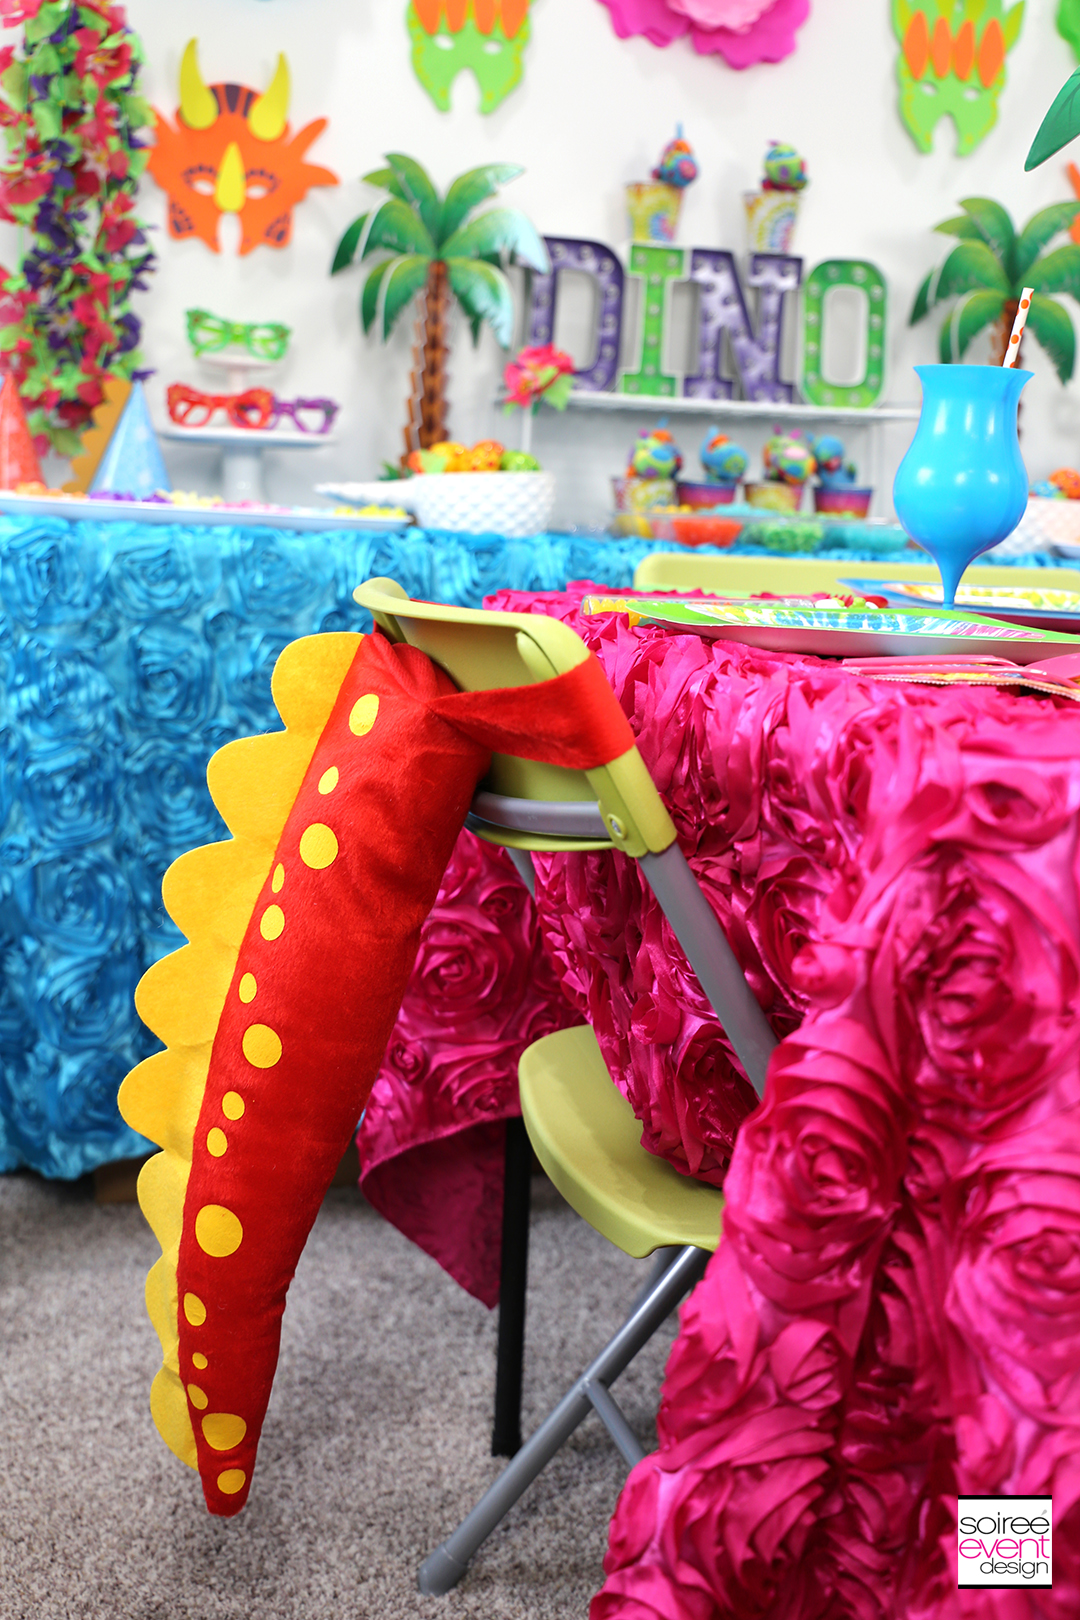 Girly Dinosaur Party Ideas - Dinosaur Tail Chairs